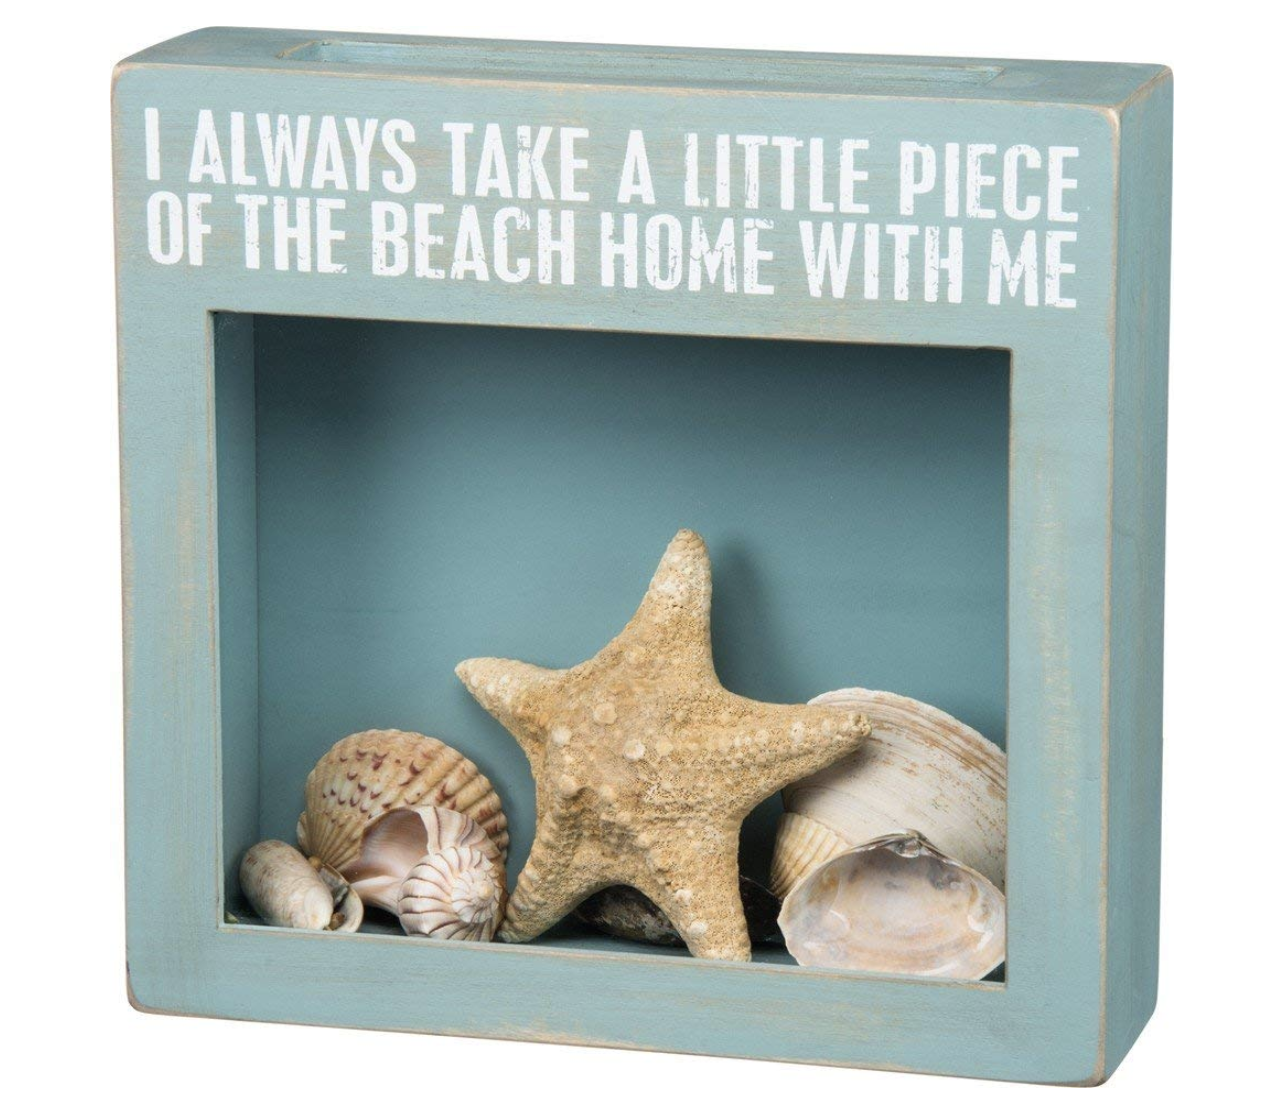 Beach Shell Shadow Box - Stash your sand and shells in this sweet beach-themed shadow box and enjoy memories from your trips for years to come! This 10x10 coastal style wooden shadow box allows you to show off your treasures without the sandy mess.